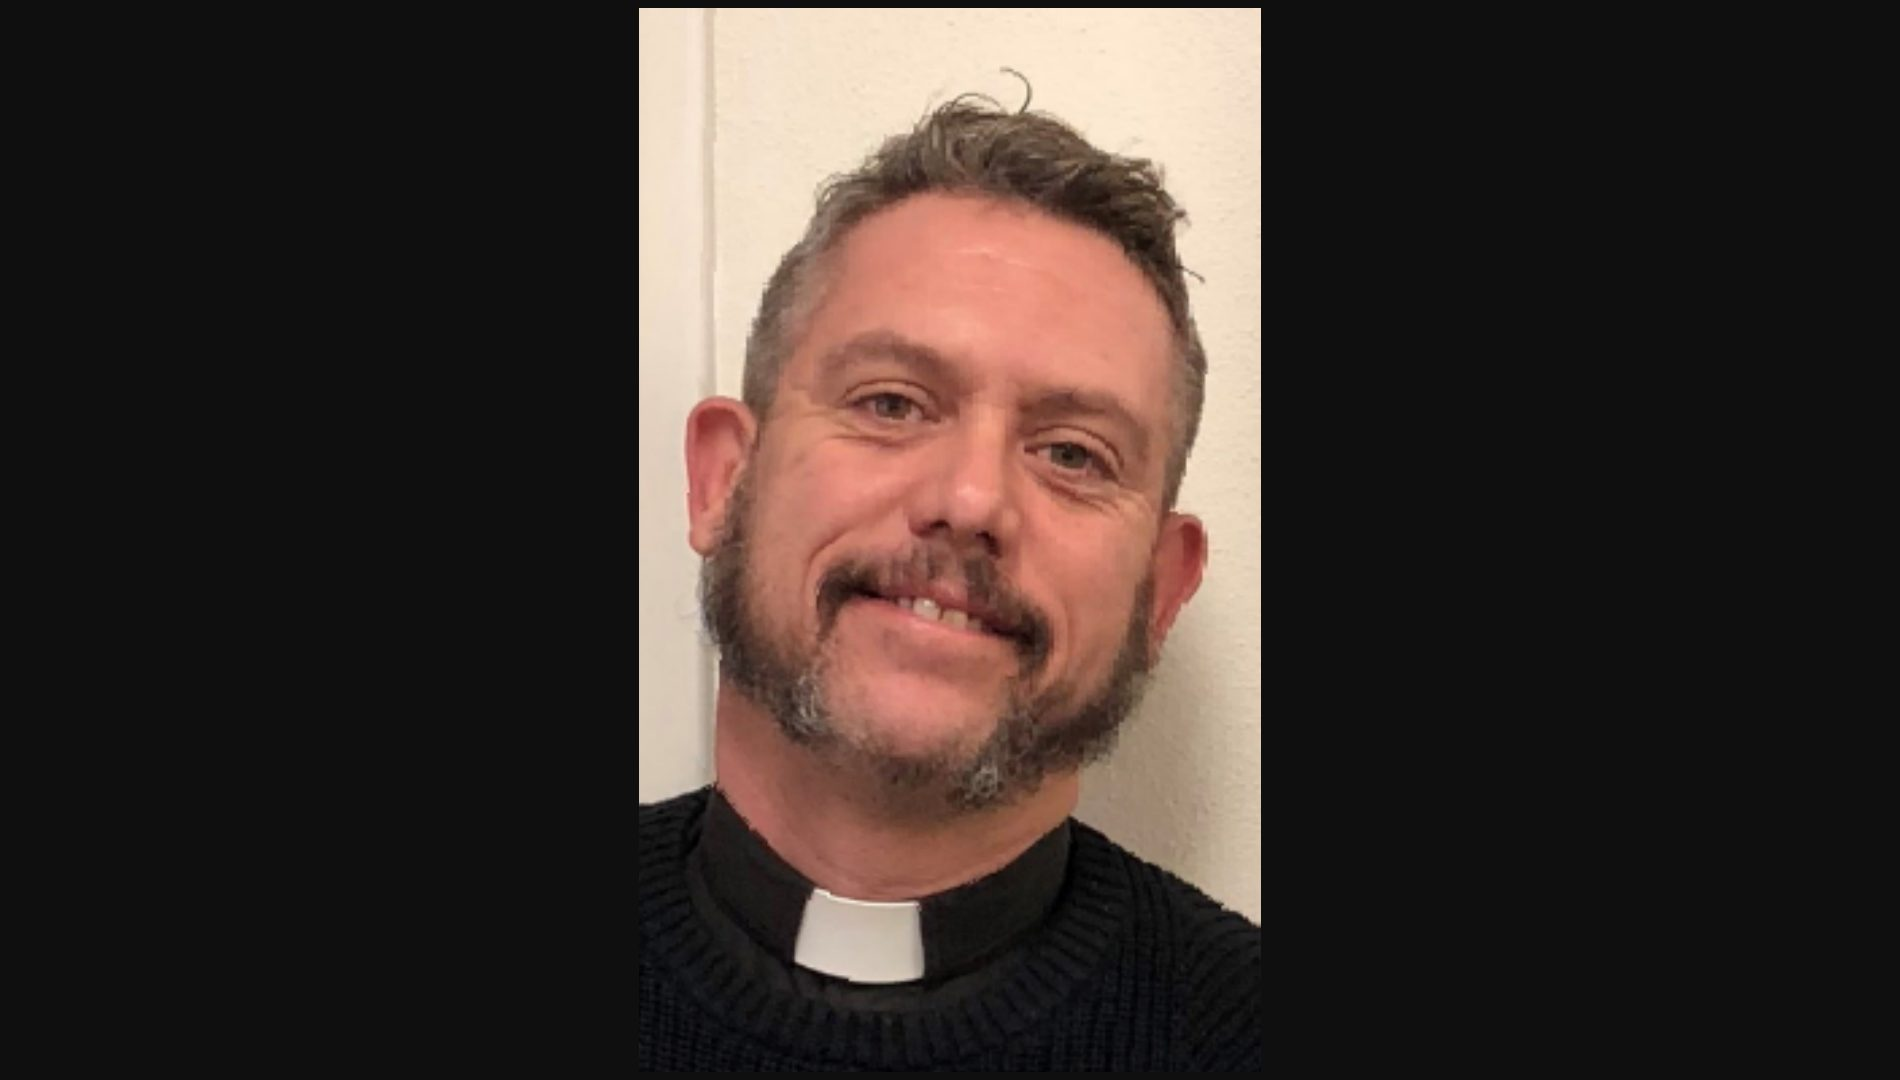 The Rev. David P. Casey, O.P. Called as Priest-in-Charge of Church of the Annunciation and Mount Olivet